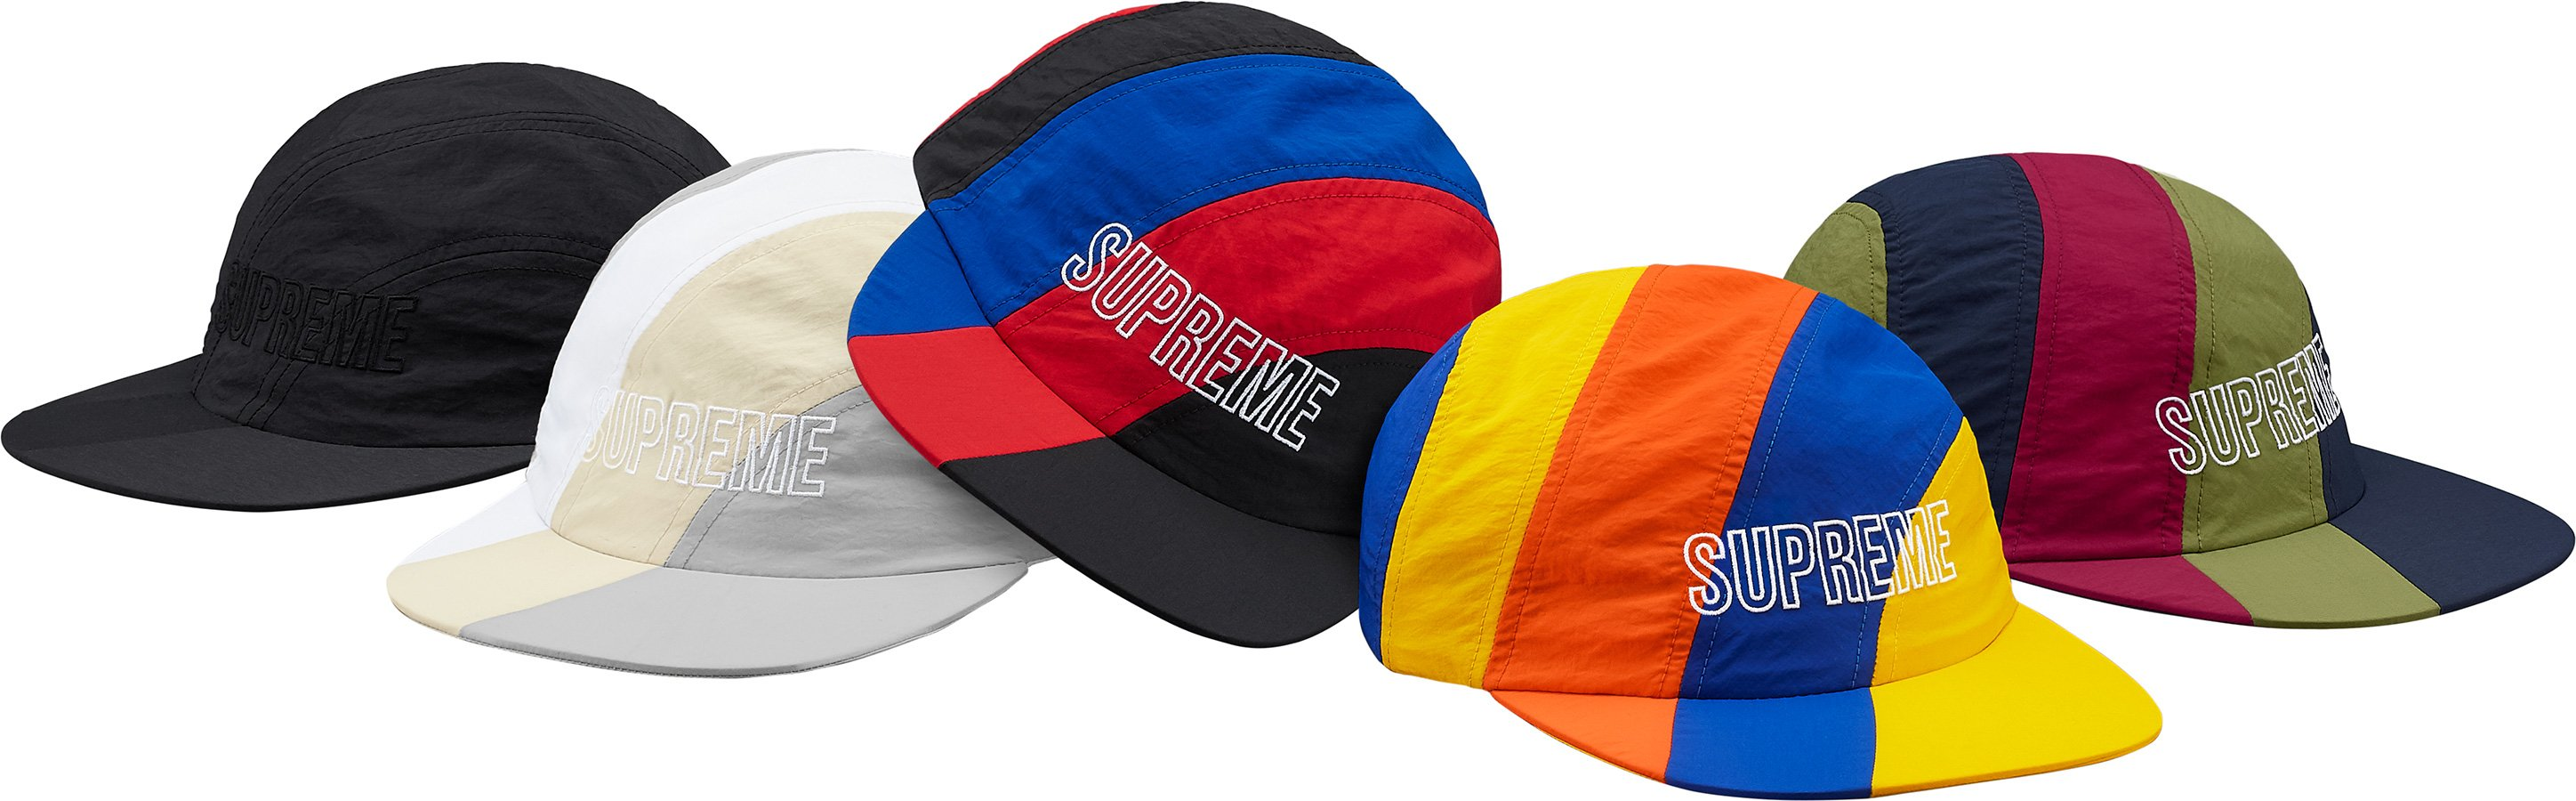 supreme-18ss-spring-summer-diagonal-stripe-nylon-hat